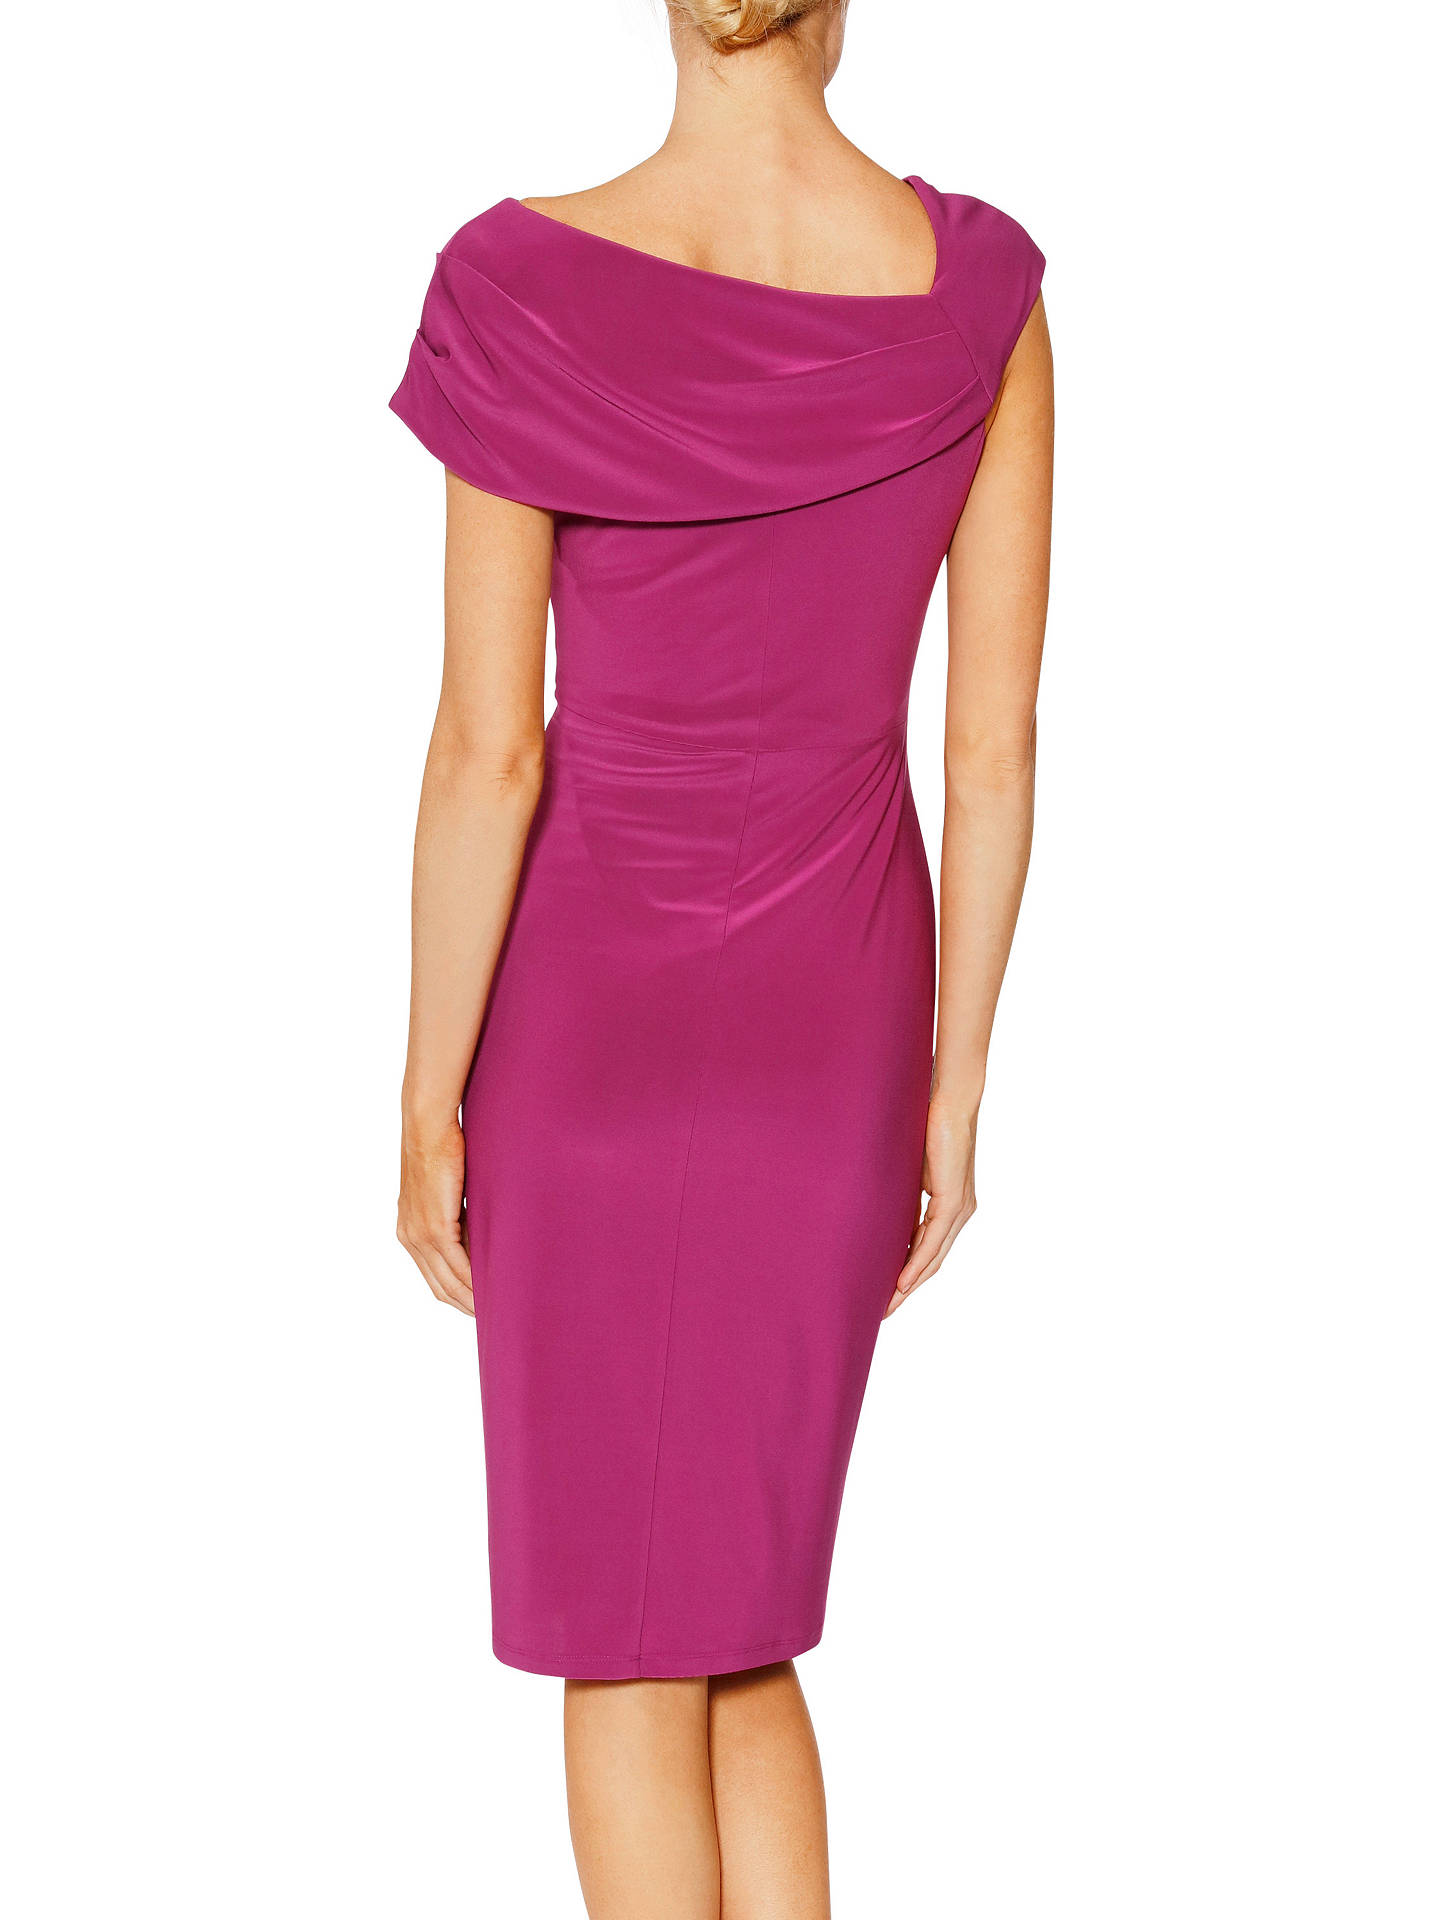 BuyGina Bacconi Dido Monochrome Dress, Mulberry, 20 Online at johnlewis.com